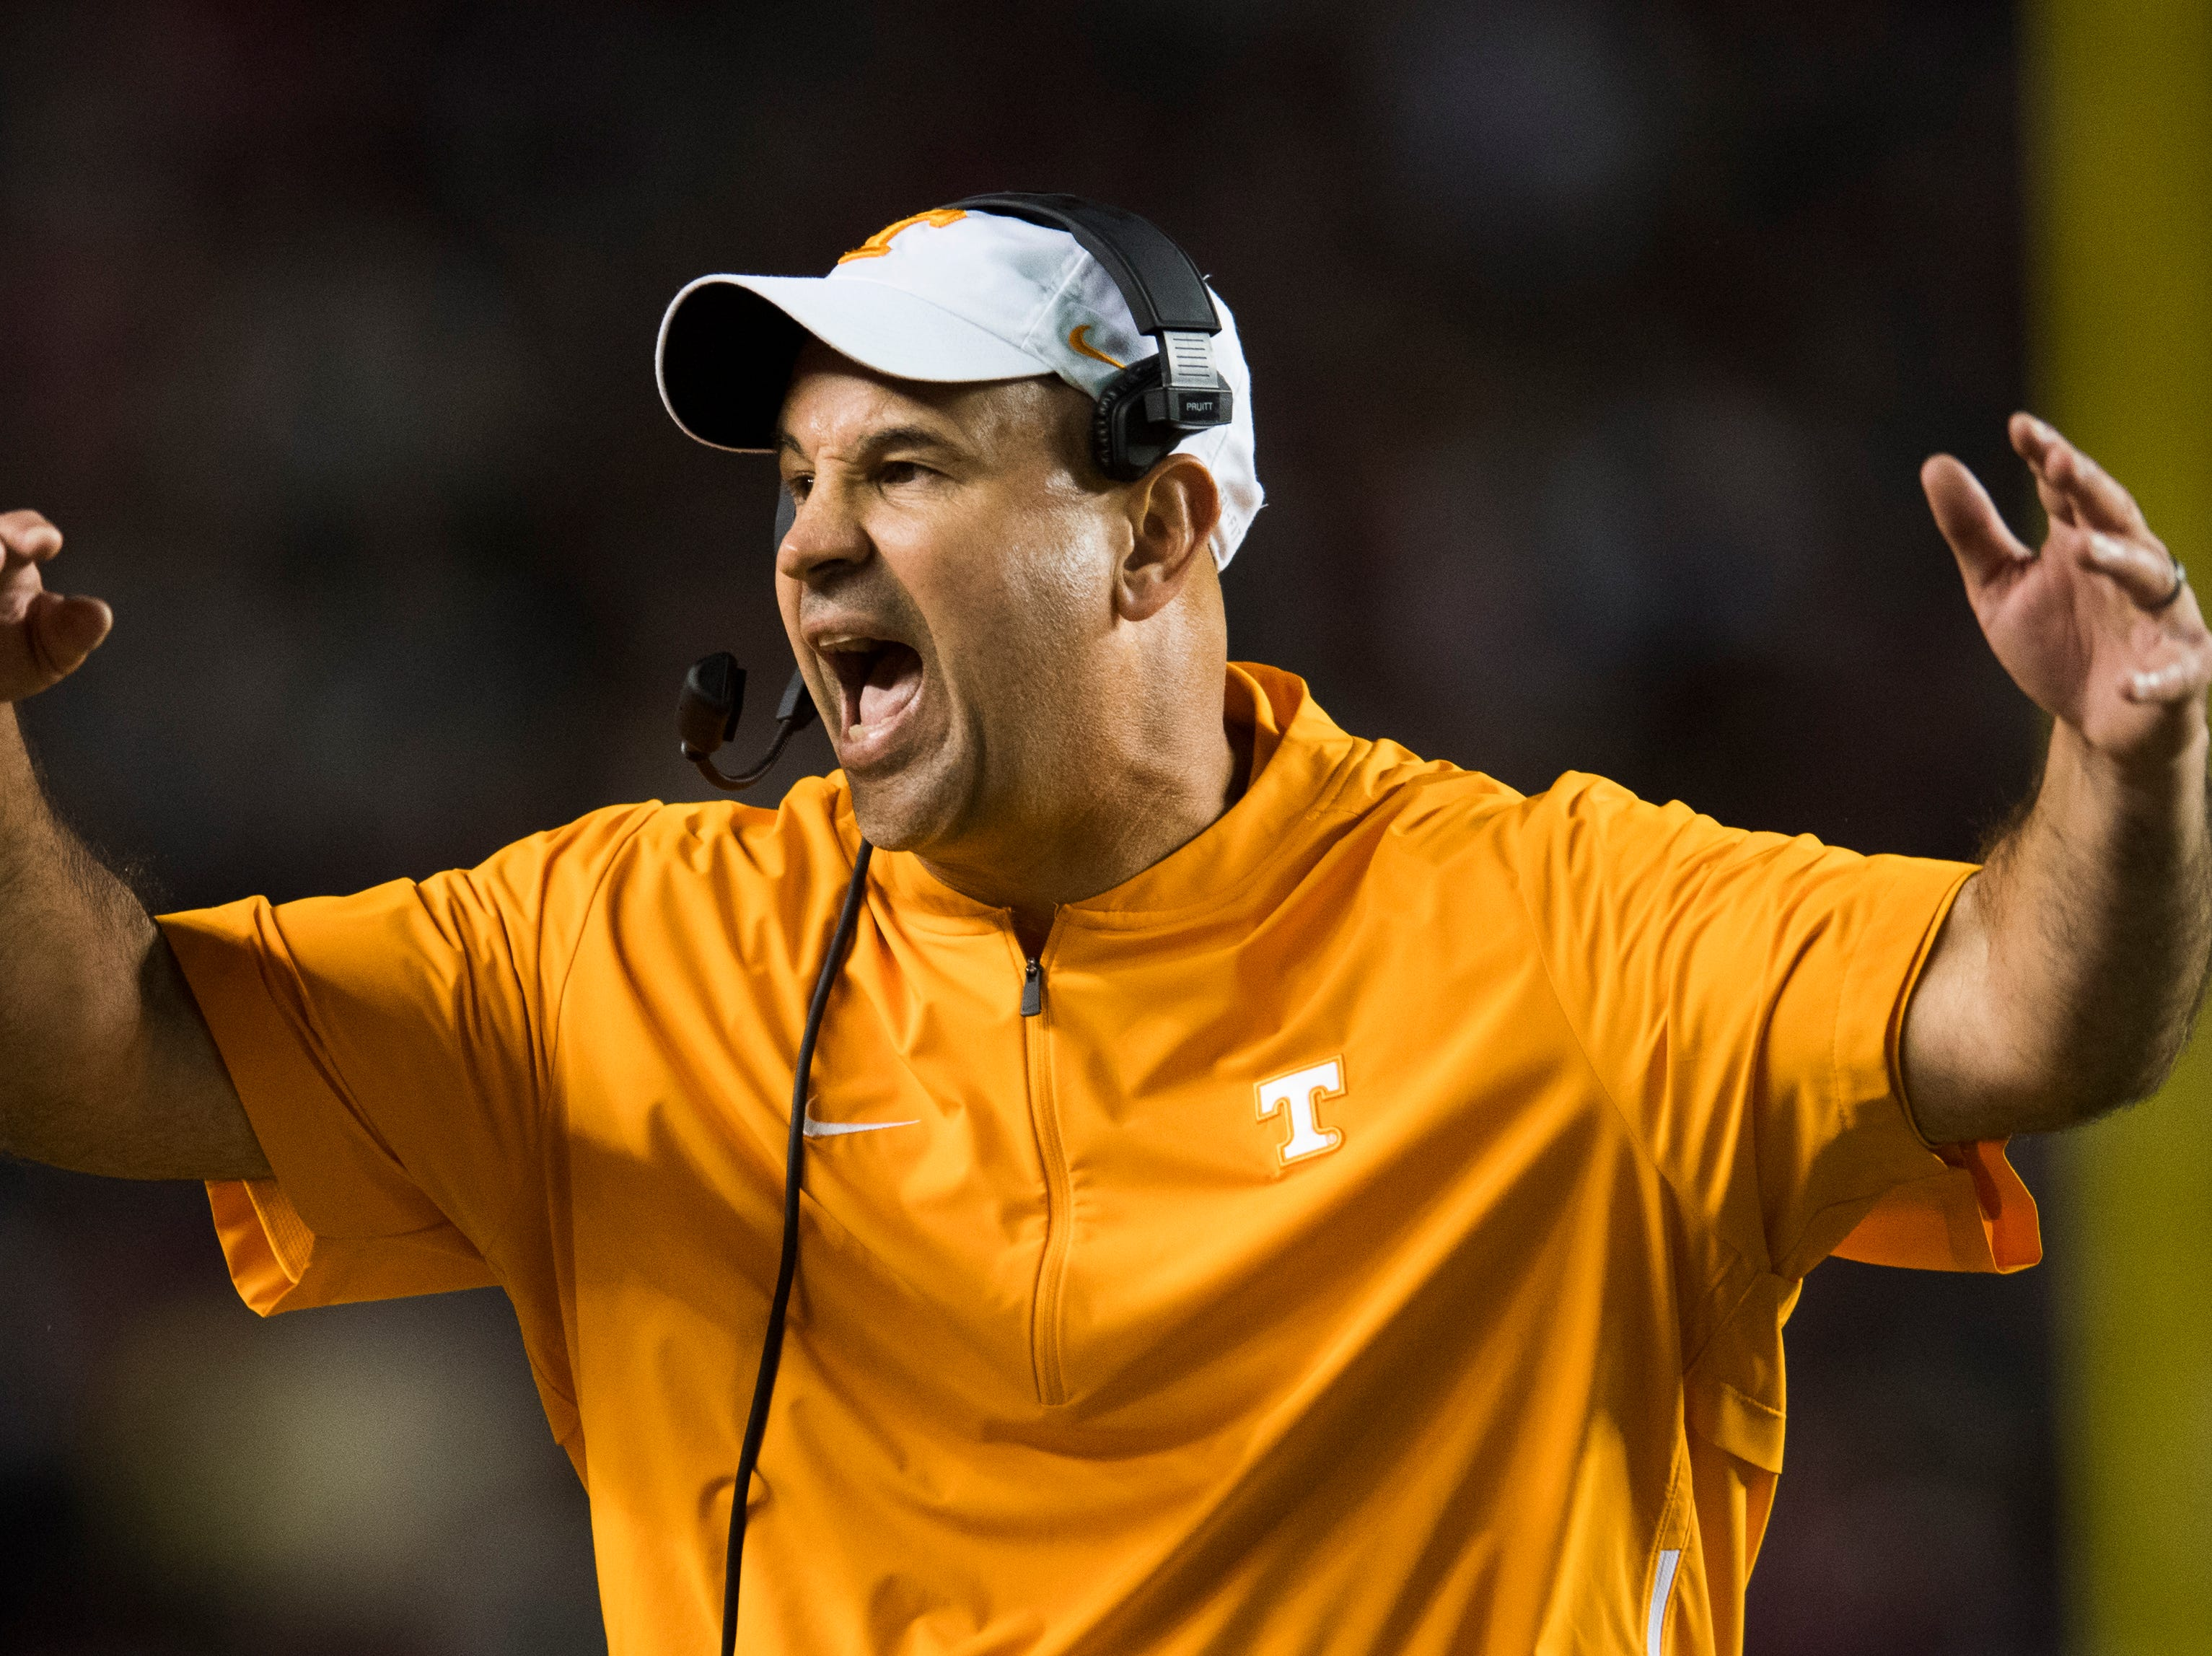 Tennessee head coach Jeremy Pruitt calls out to the field during a game between Tennessee and South Carolina at Williams-Brice Stadium in Columbia, South Carolina, on Saturday, October 27, 2018.